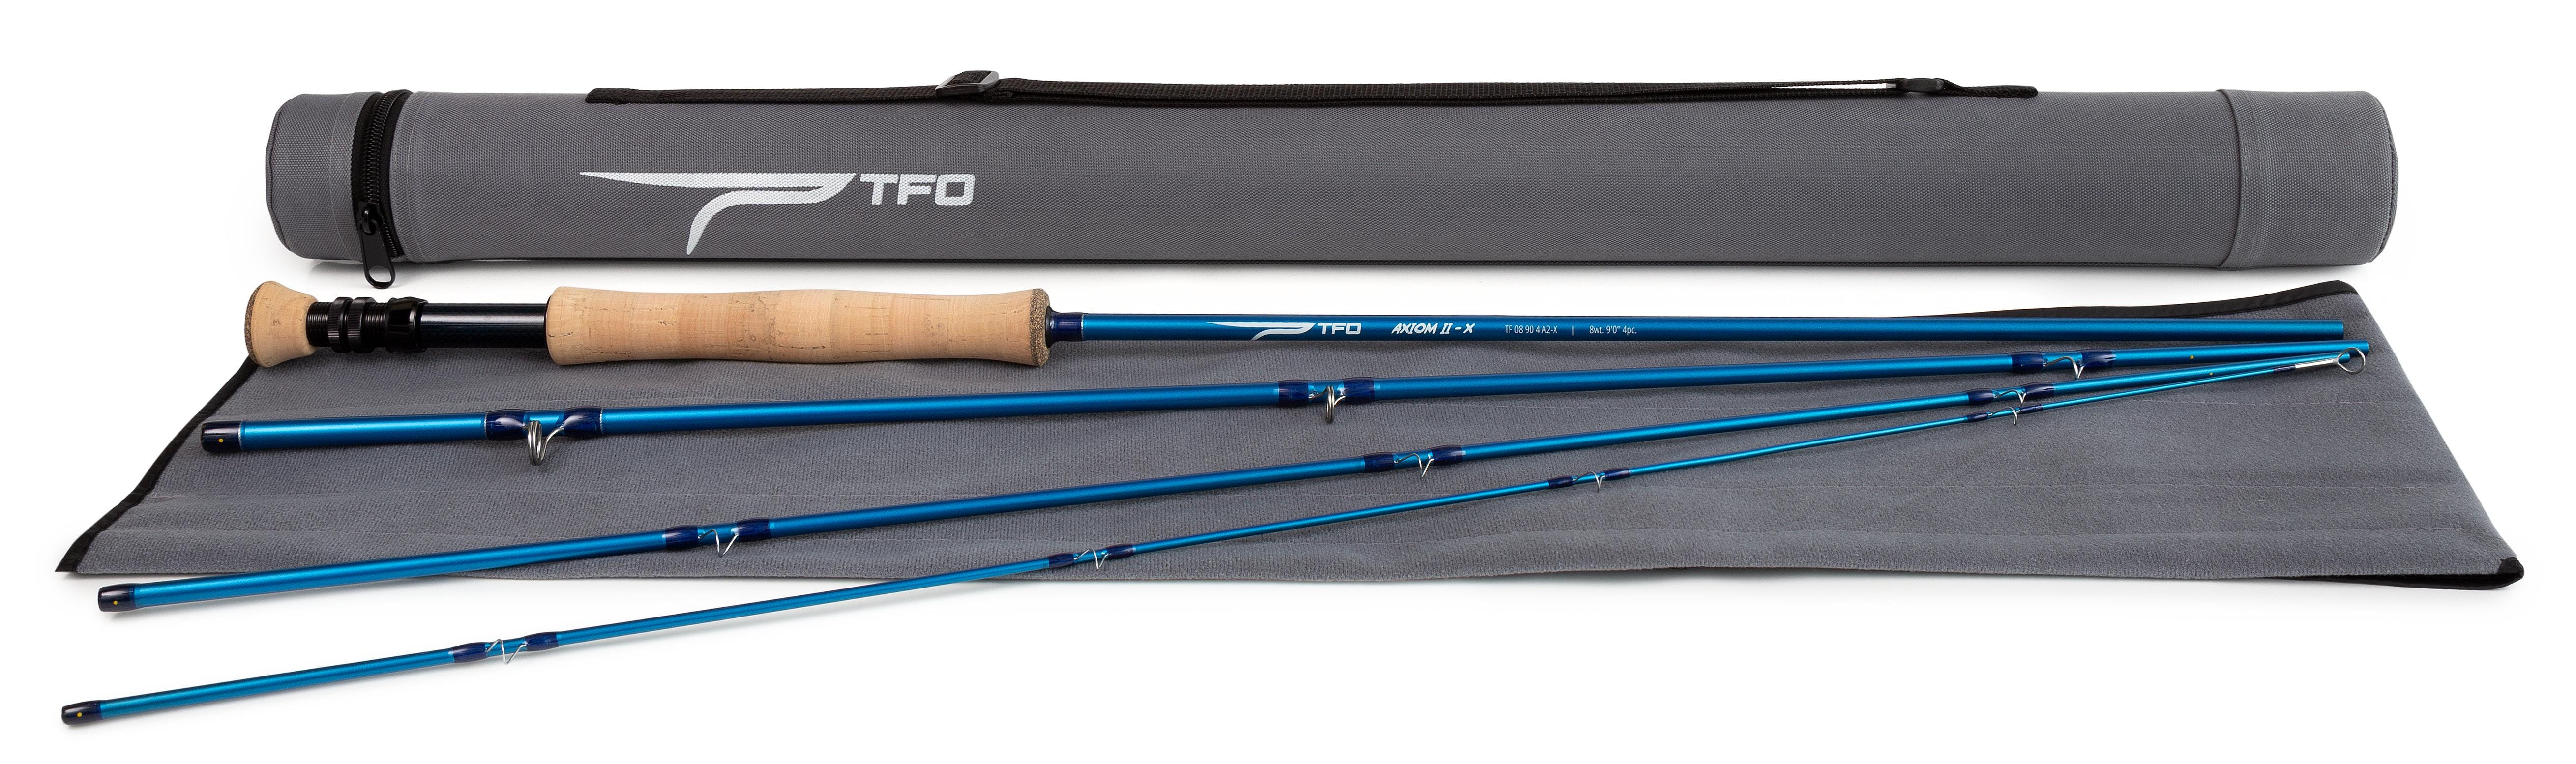 Temple Fork Outfitters Axiom II-X Fly Rod